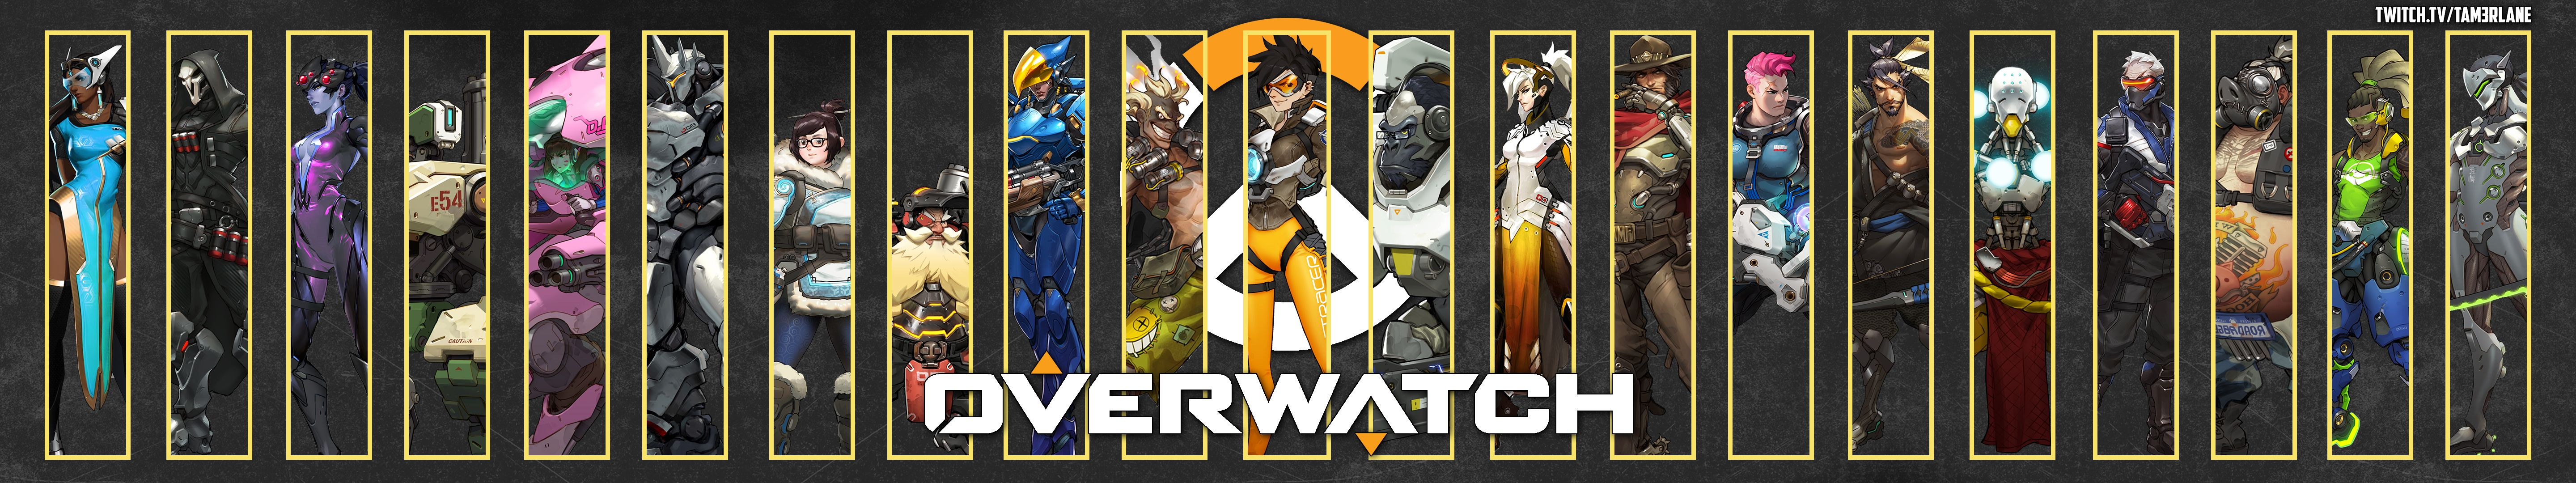 Overwatch Triple Monitor Wallpaper 5760x1080 Enjoy